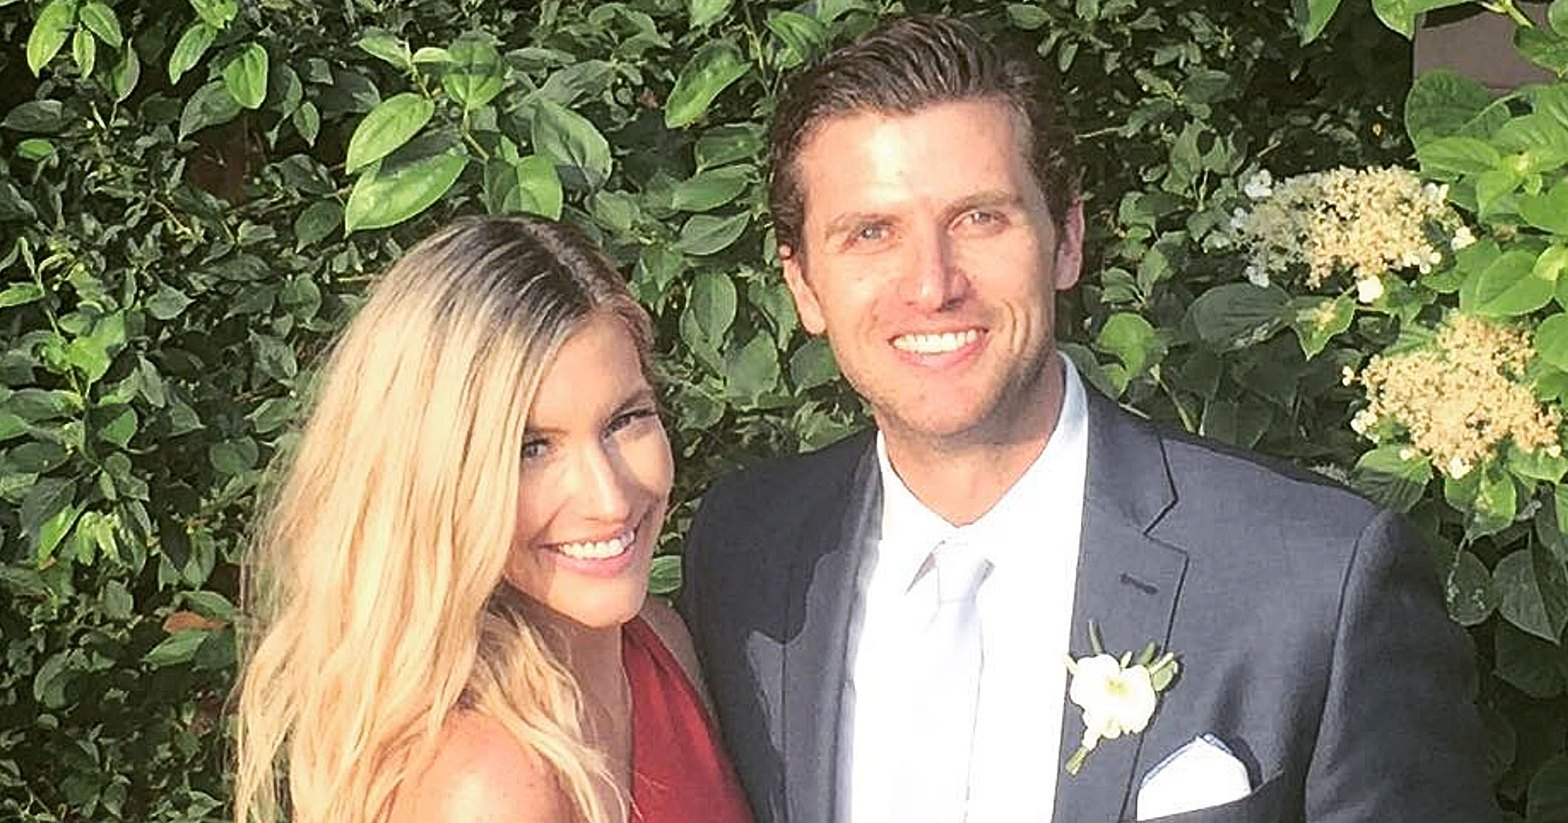 'Bachelor' Alum Whitney Bischoff Is Seven Months Pregnant